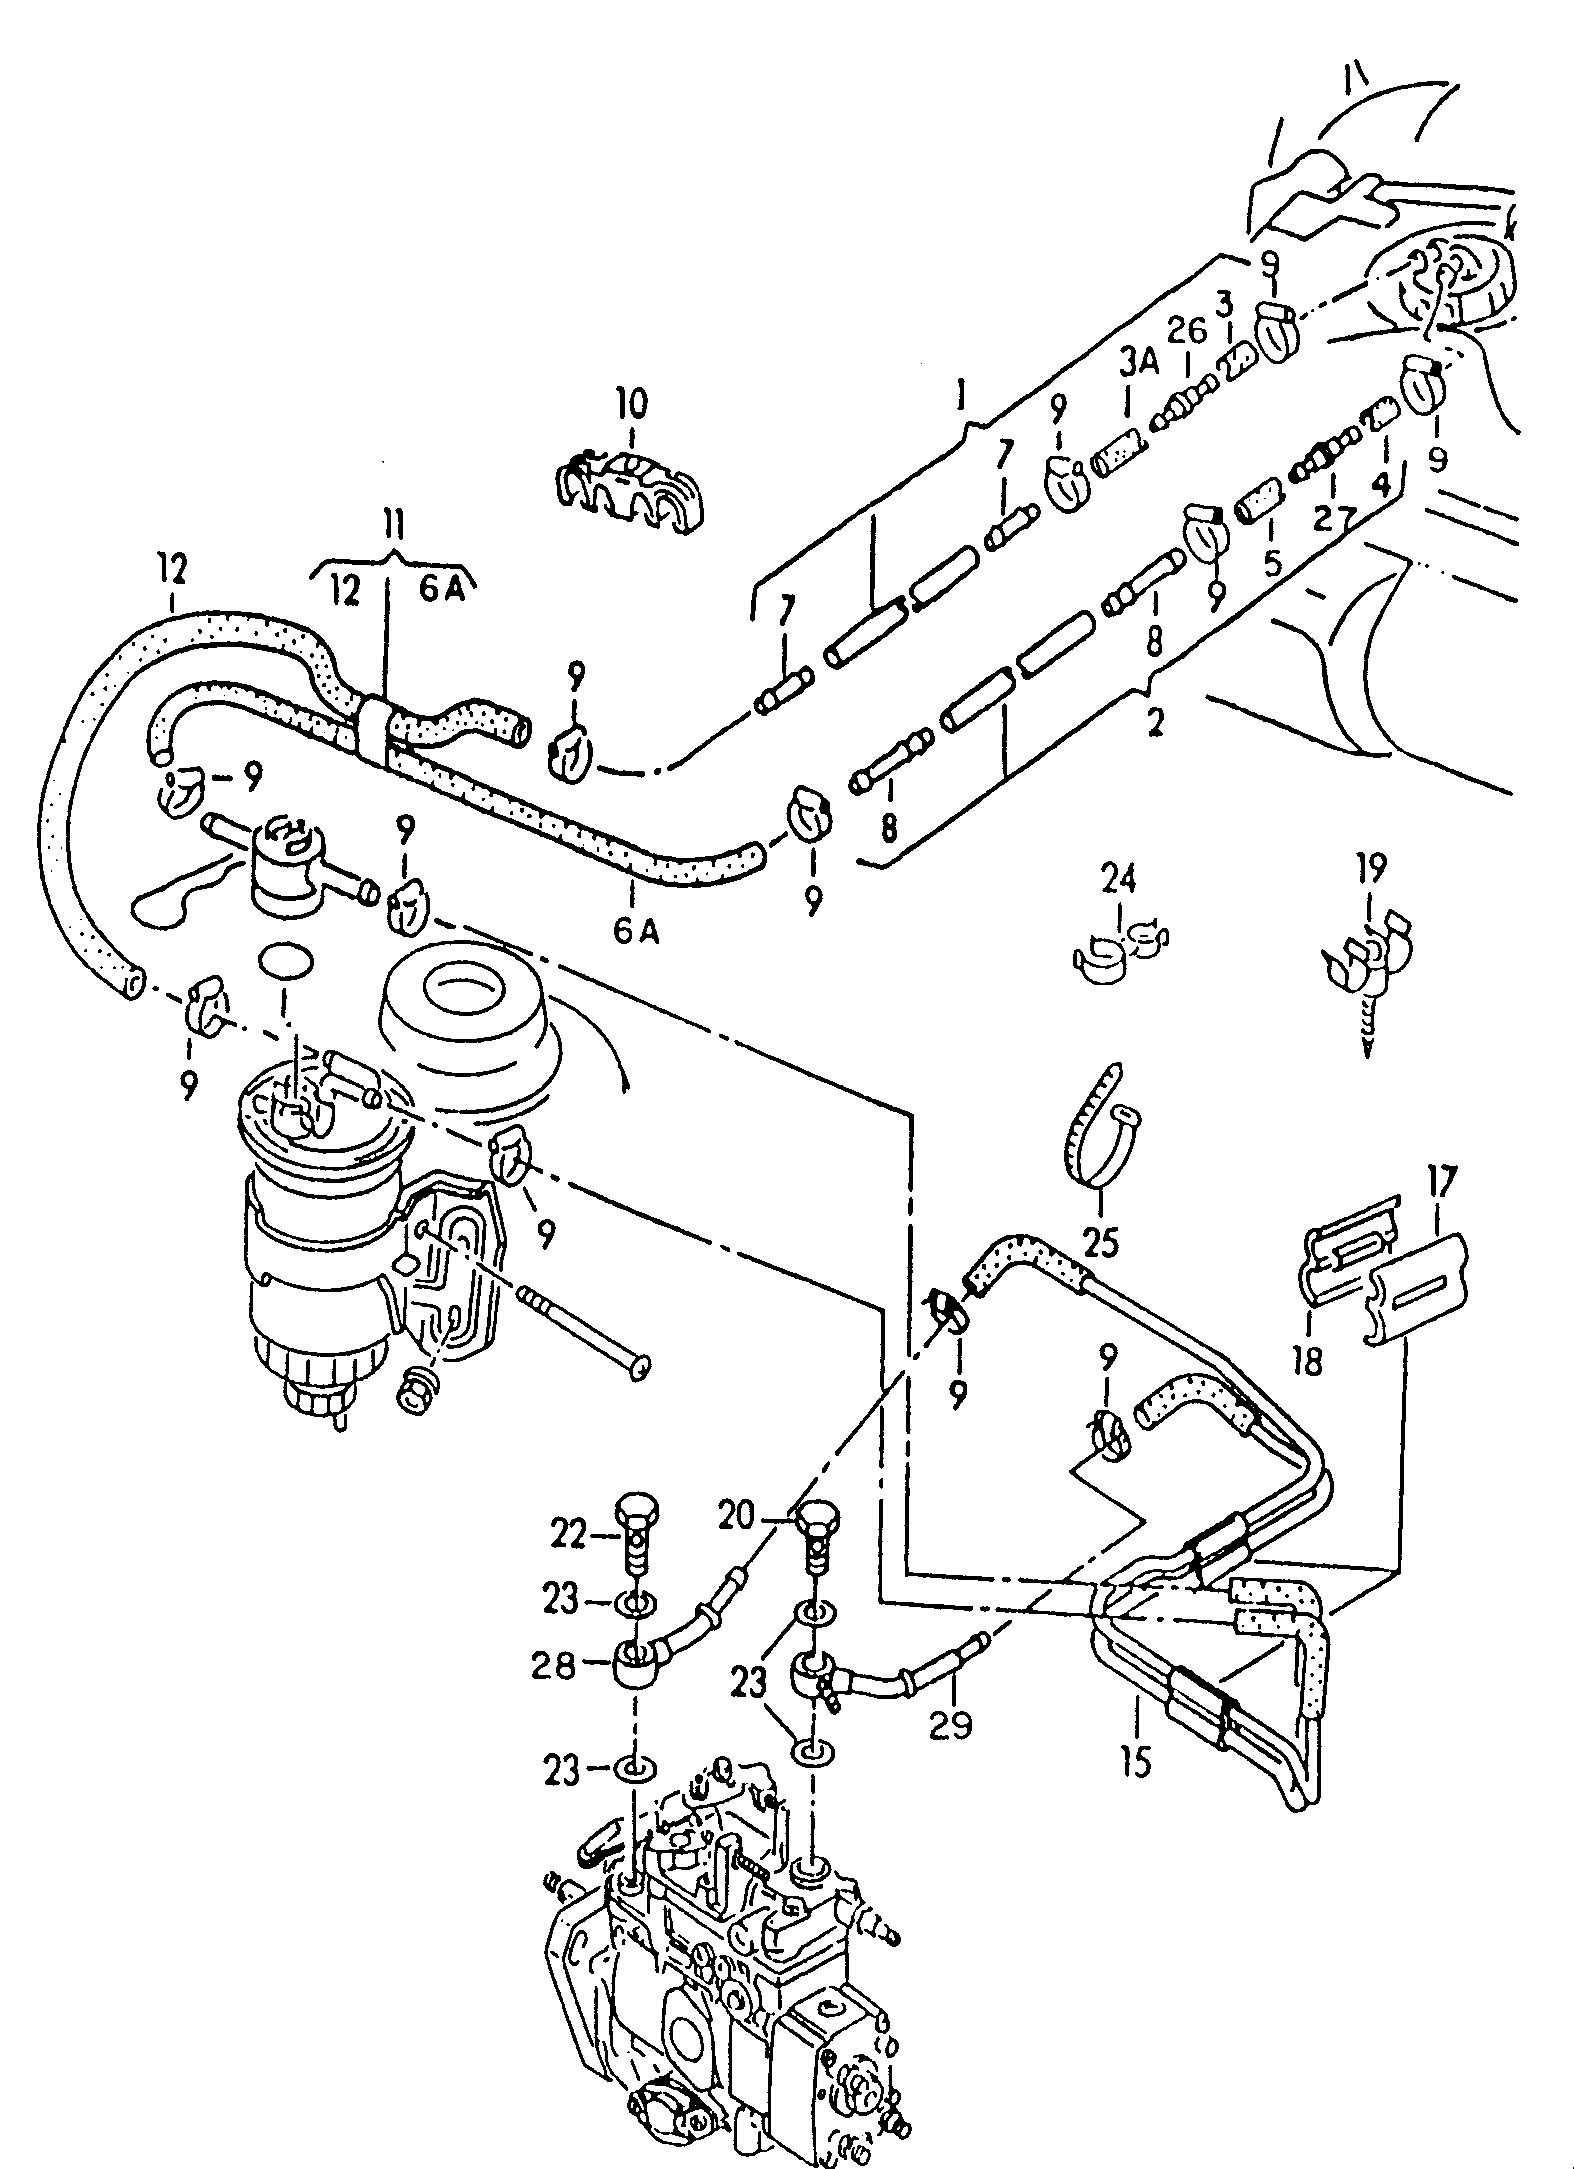 Volkswagen W8 Engine Diagram. Volkswagen. Auto Wiring Diagram